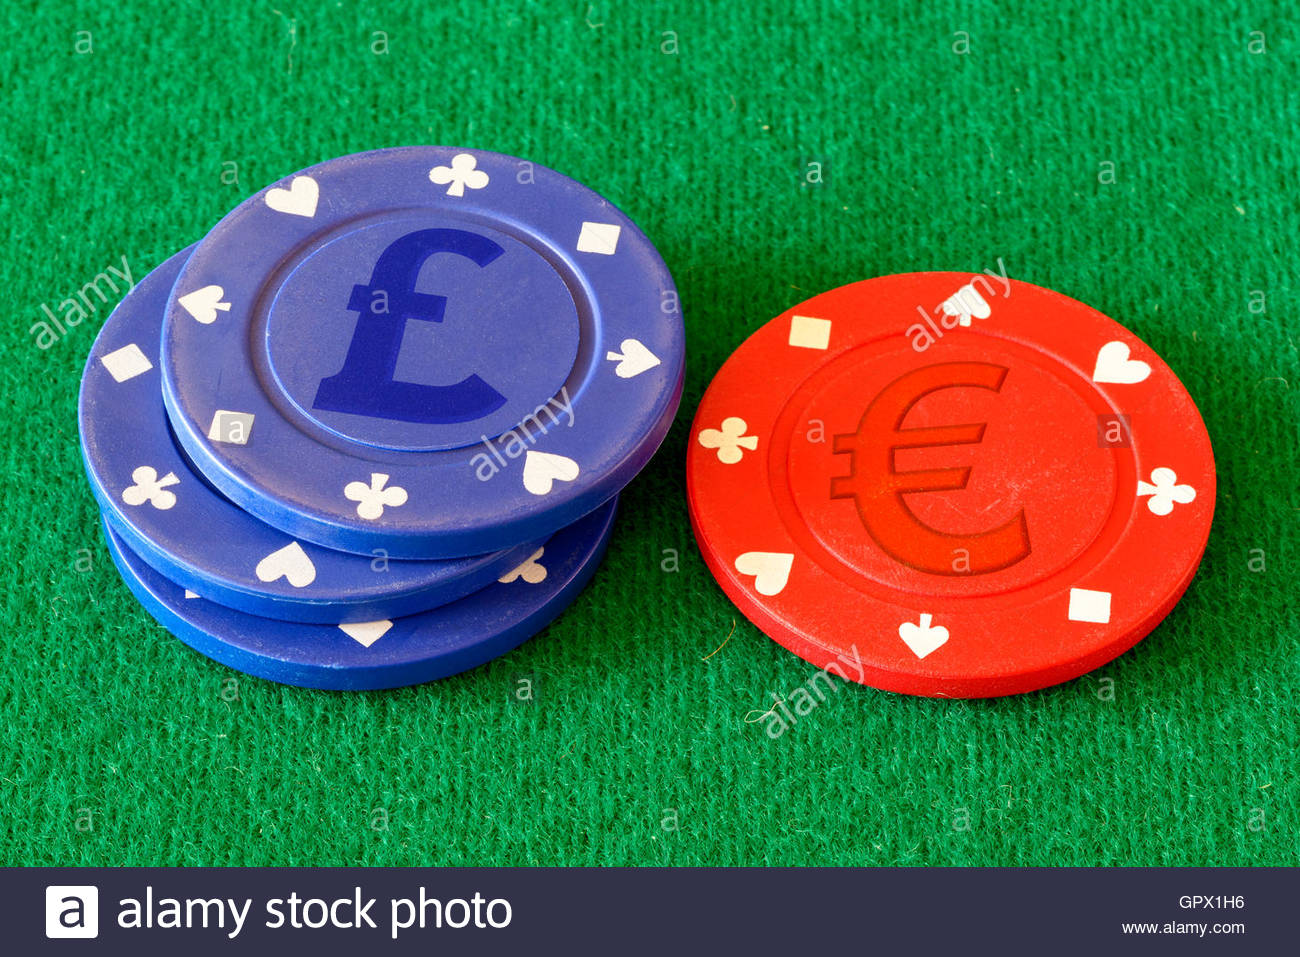 Counters used in gambling casino games supply